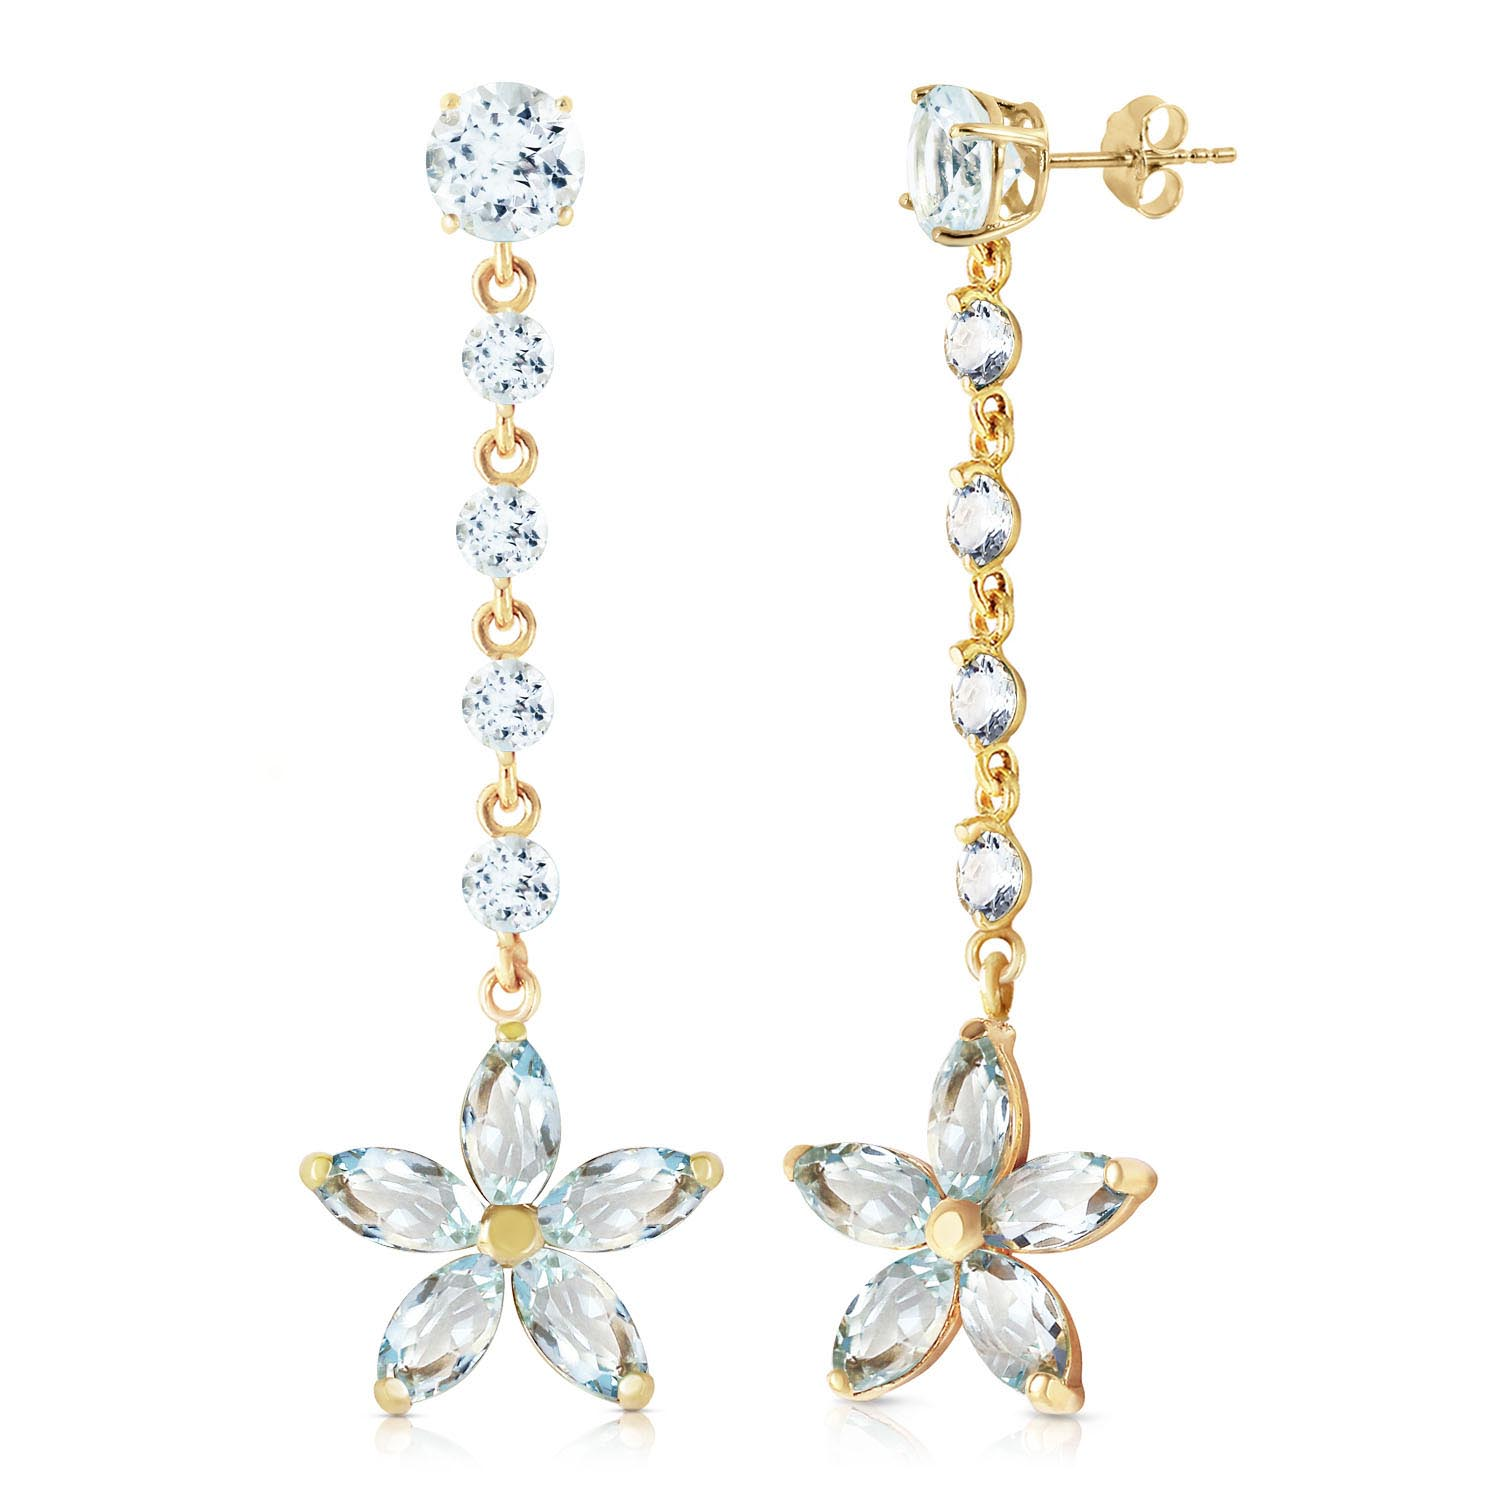 Bargain Aquamarine Daisy Chain Drop Earrings 4.8ctw in 9ct Gold Stockists